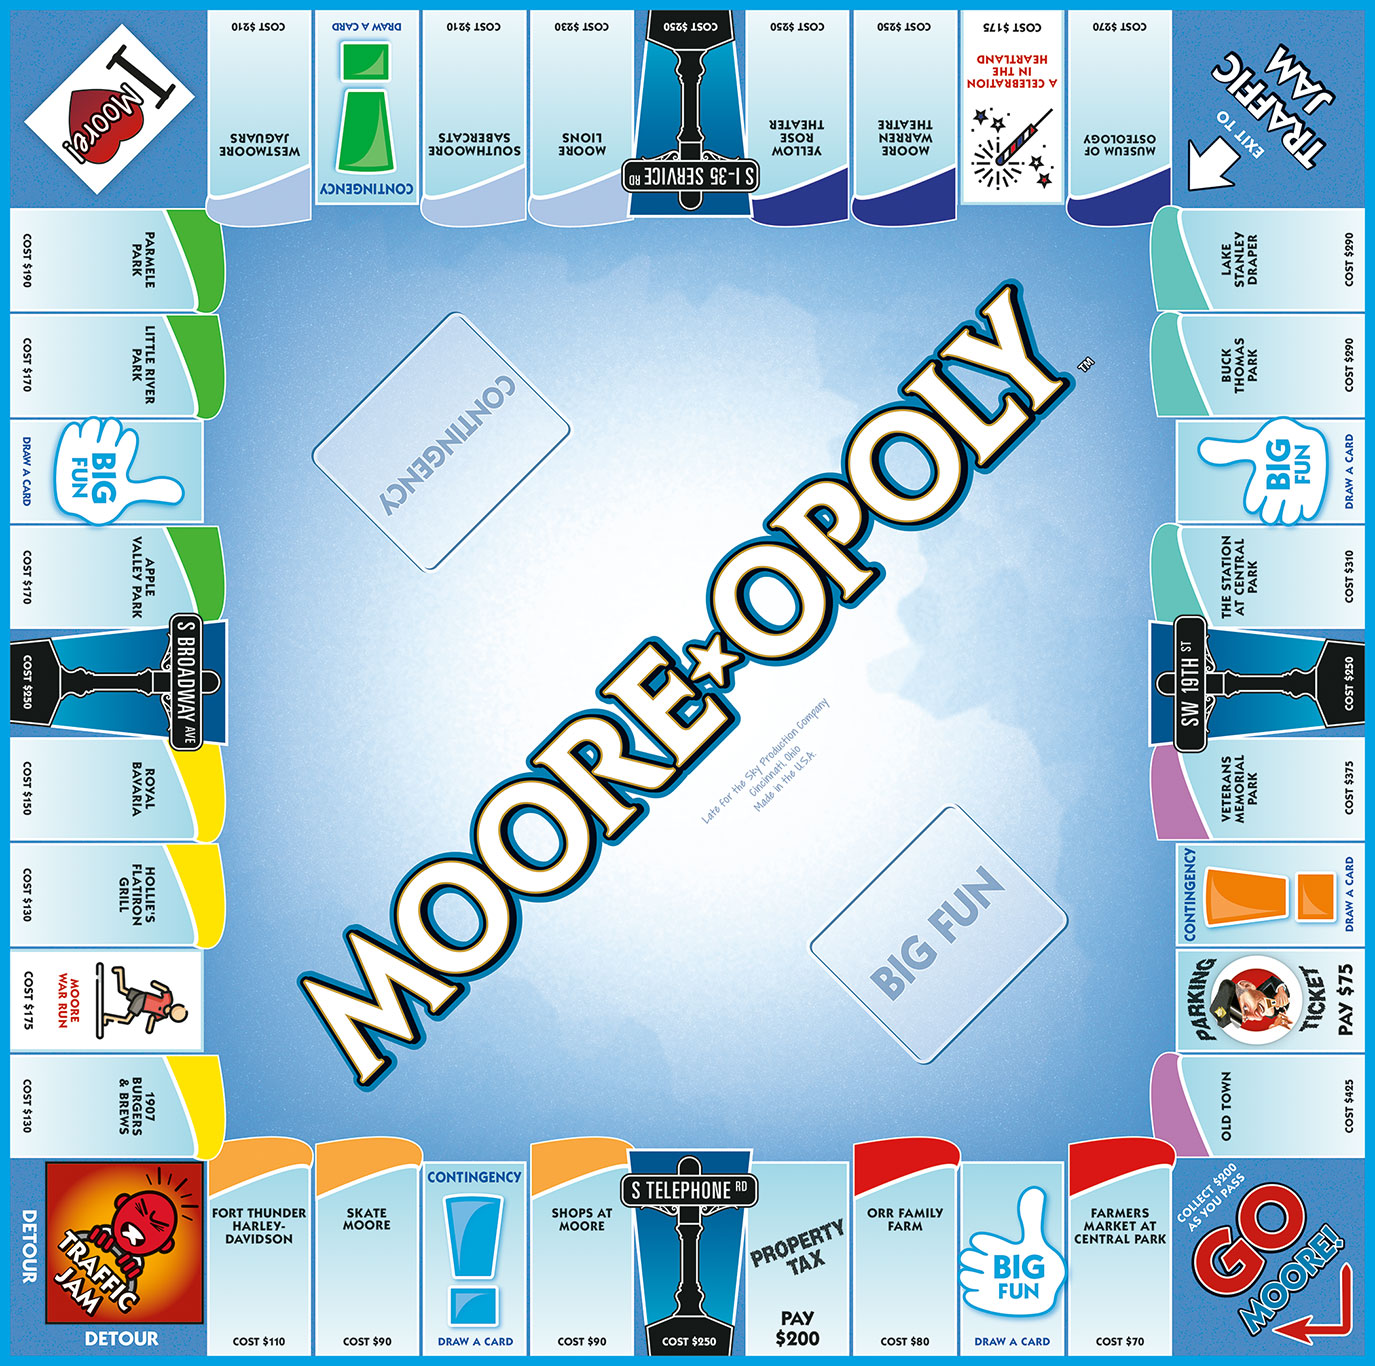 MOORE-OPOLY Board Game